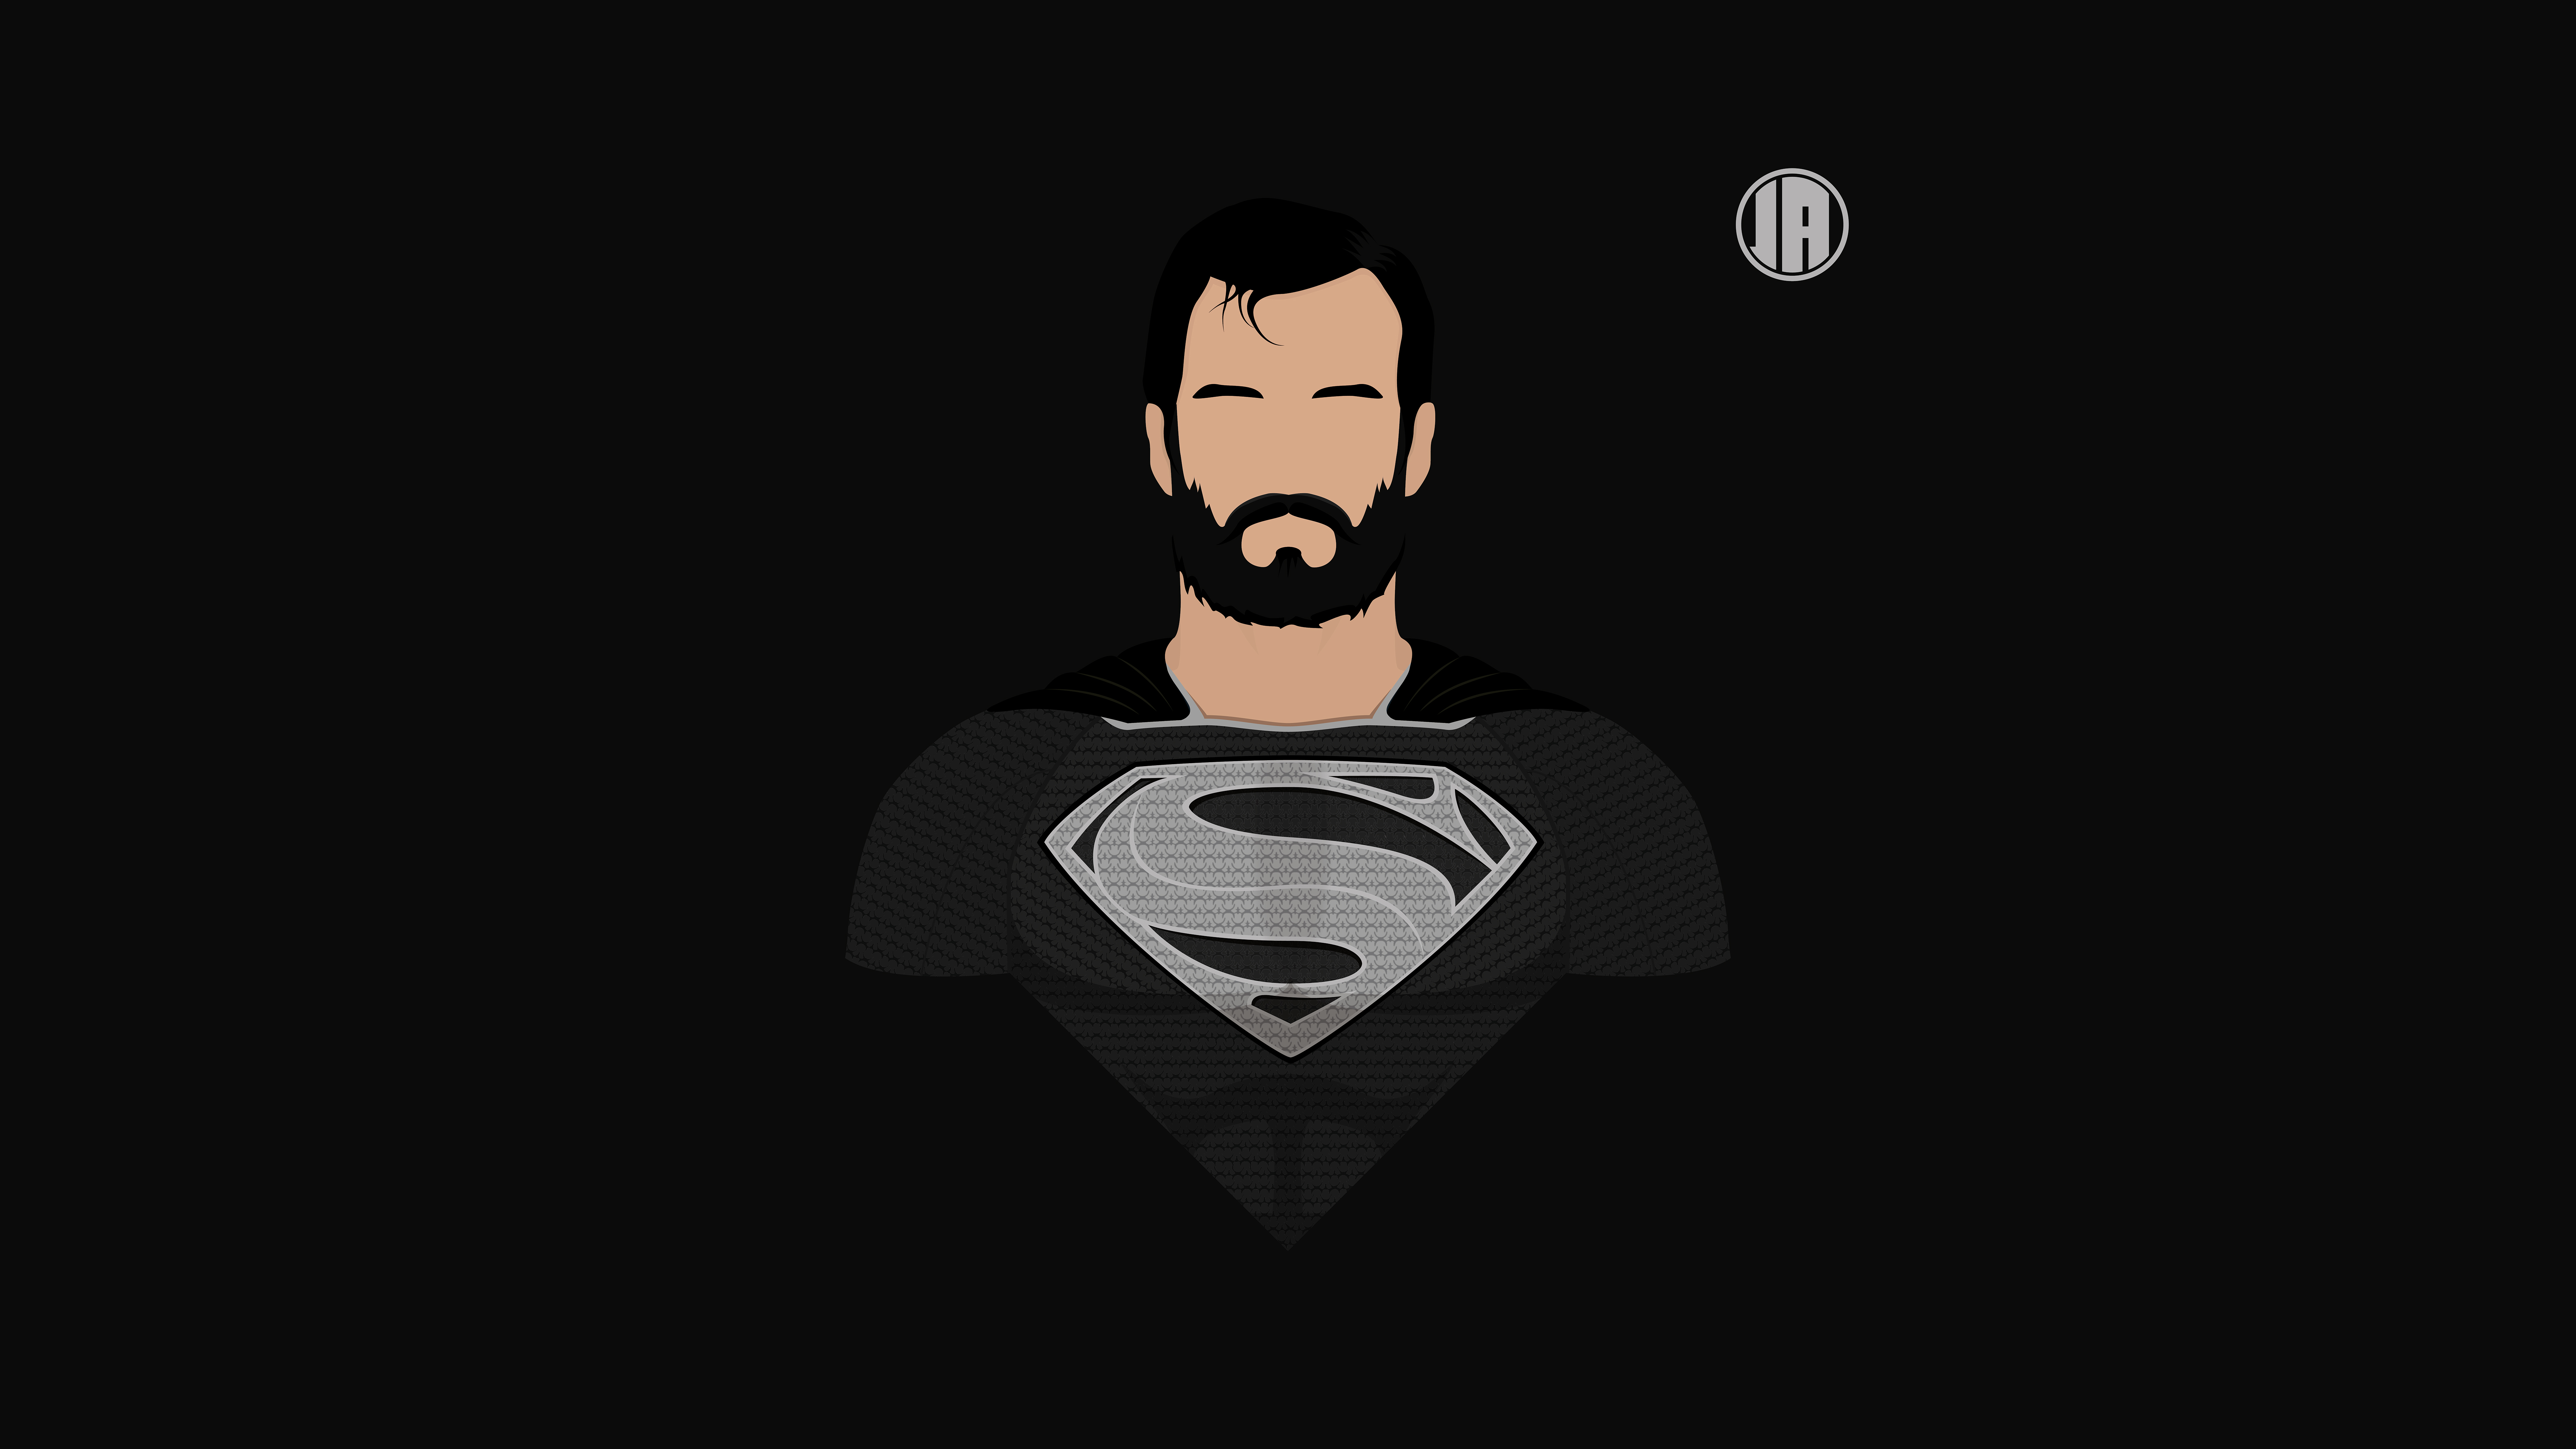 Superman Dceu Minimalism 8k Hd Superheroes 4k Wallpapers Images